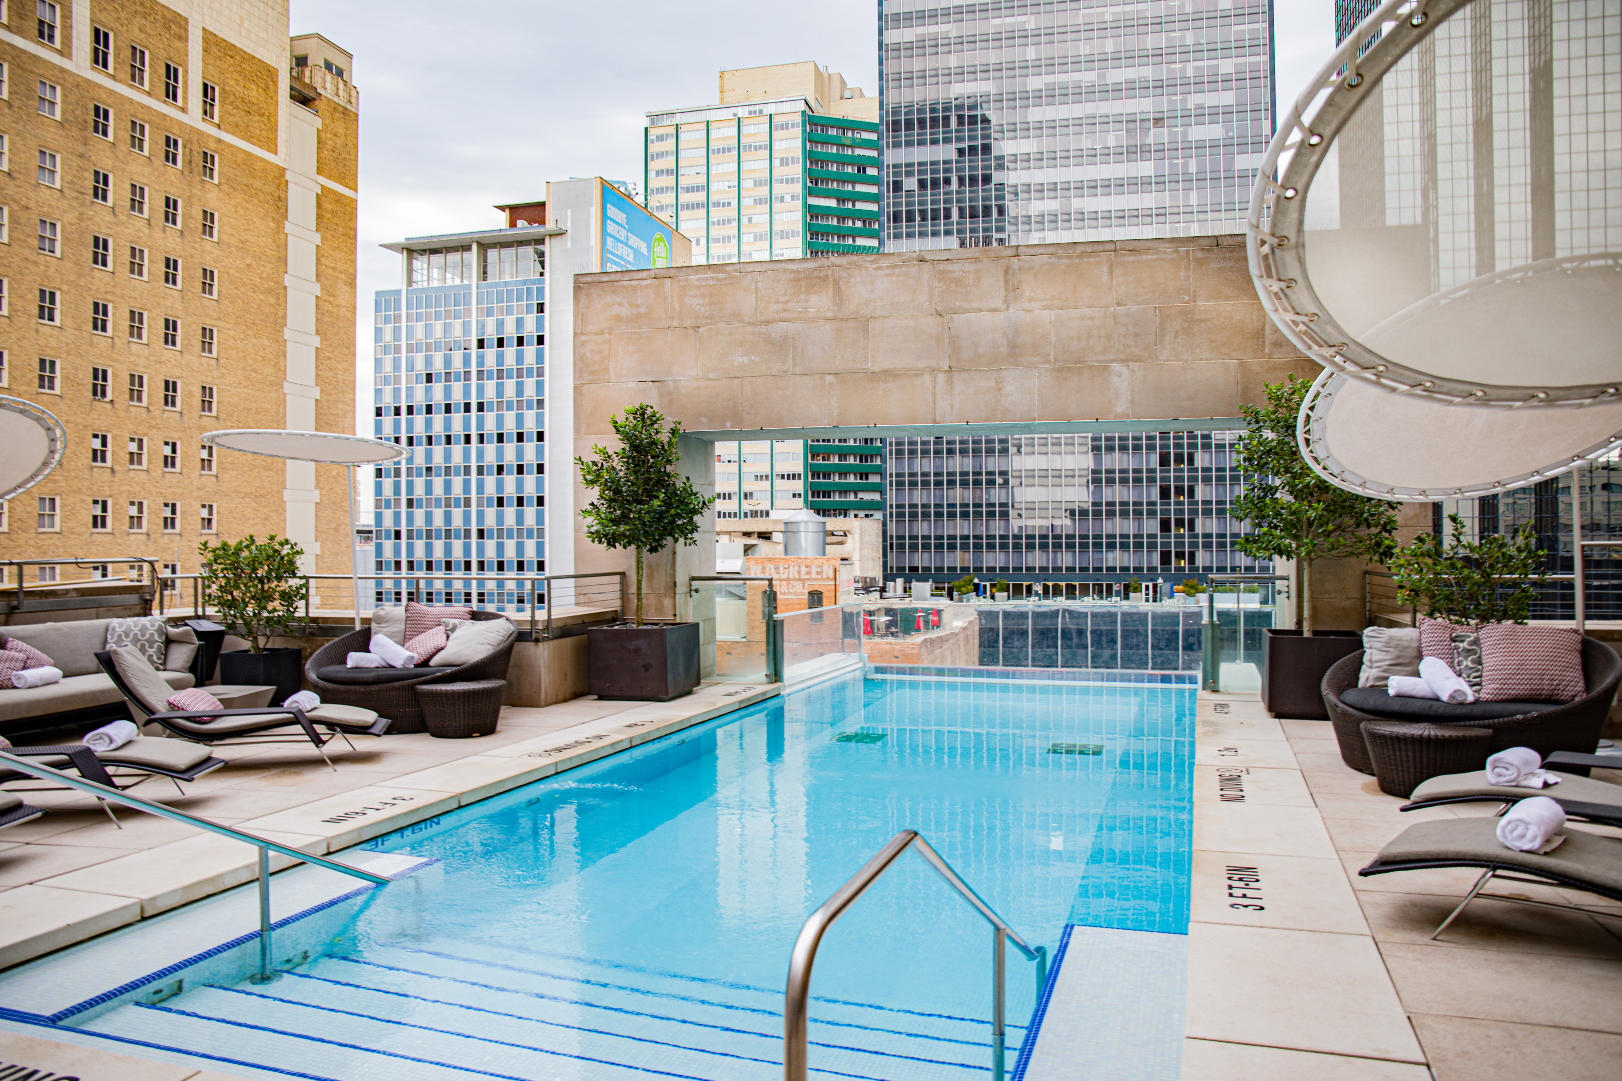 The pool at The Joule Hotel in Downtown Dallas.